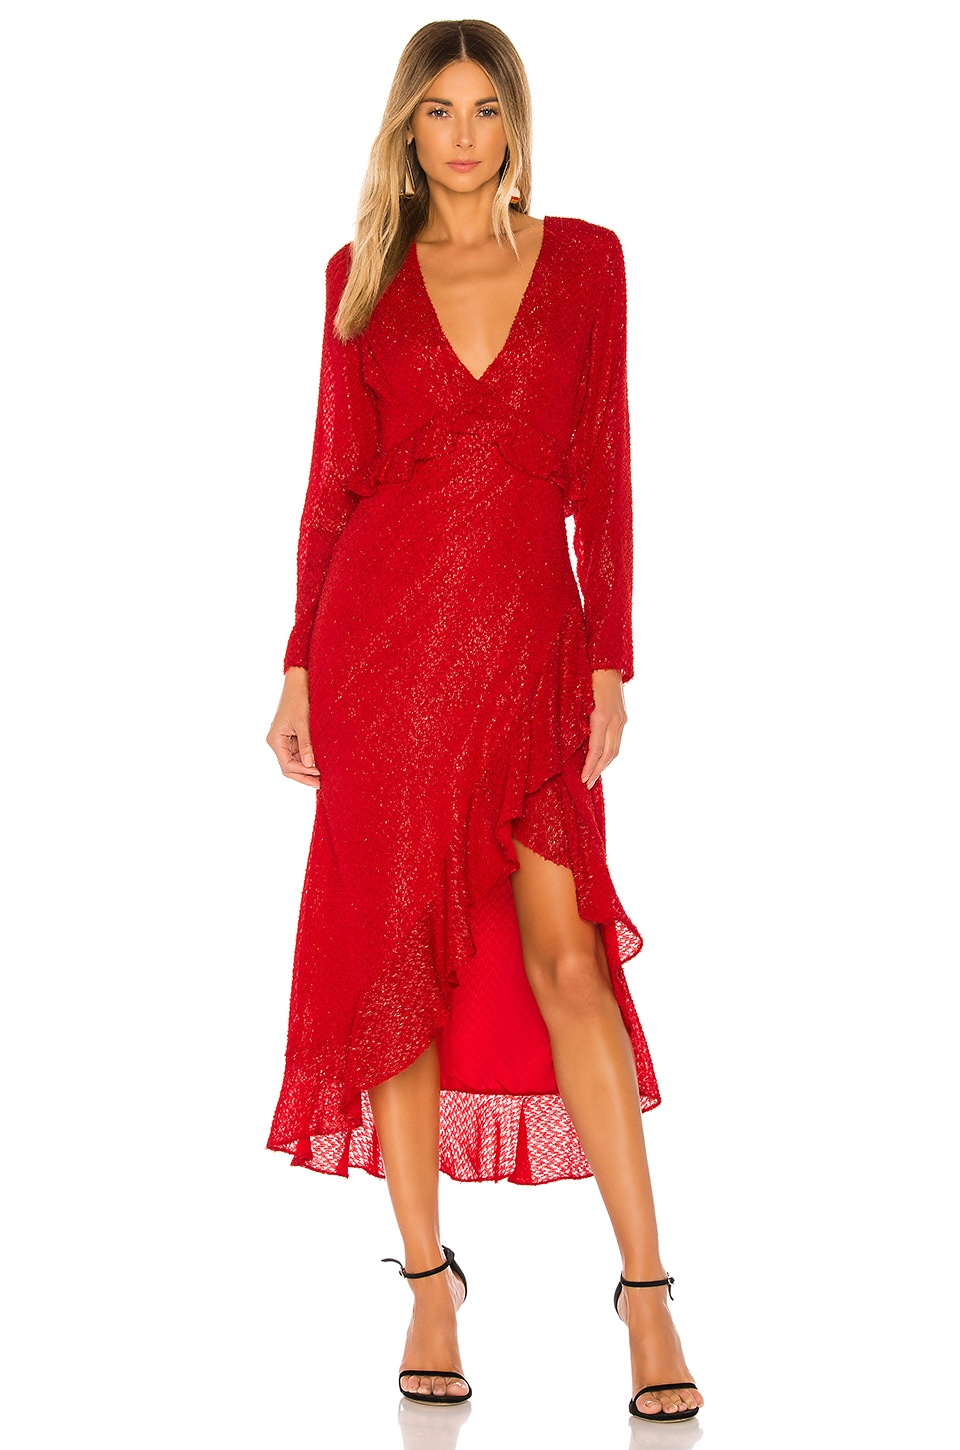 House of Harlow 1960 x REVOLVE Justina Maxi Dress in Red